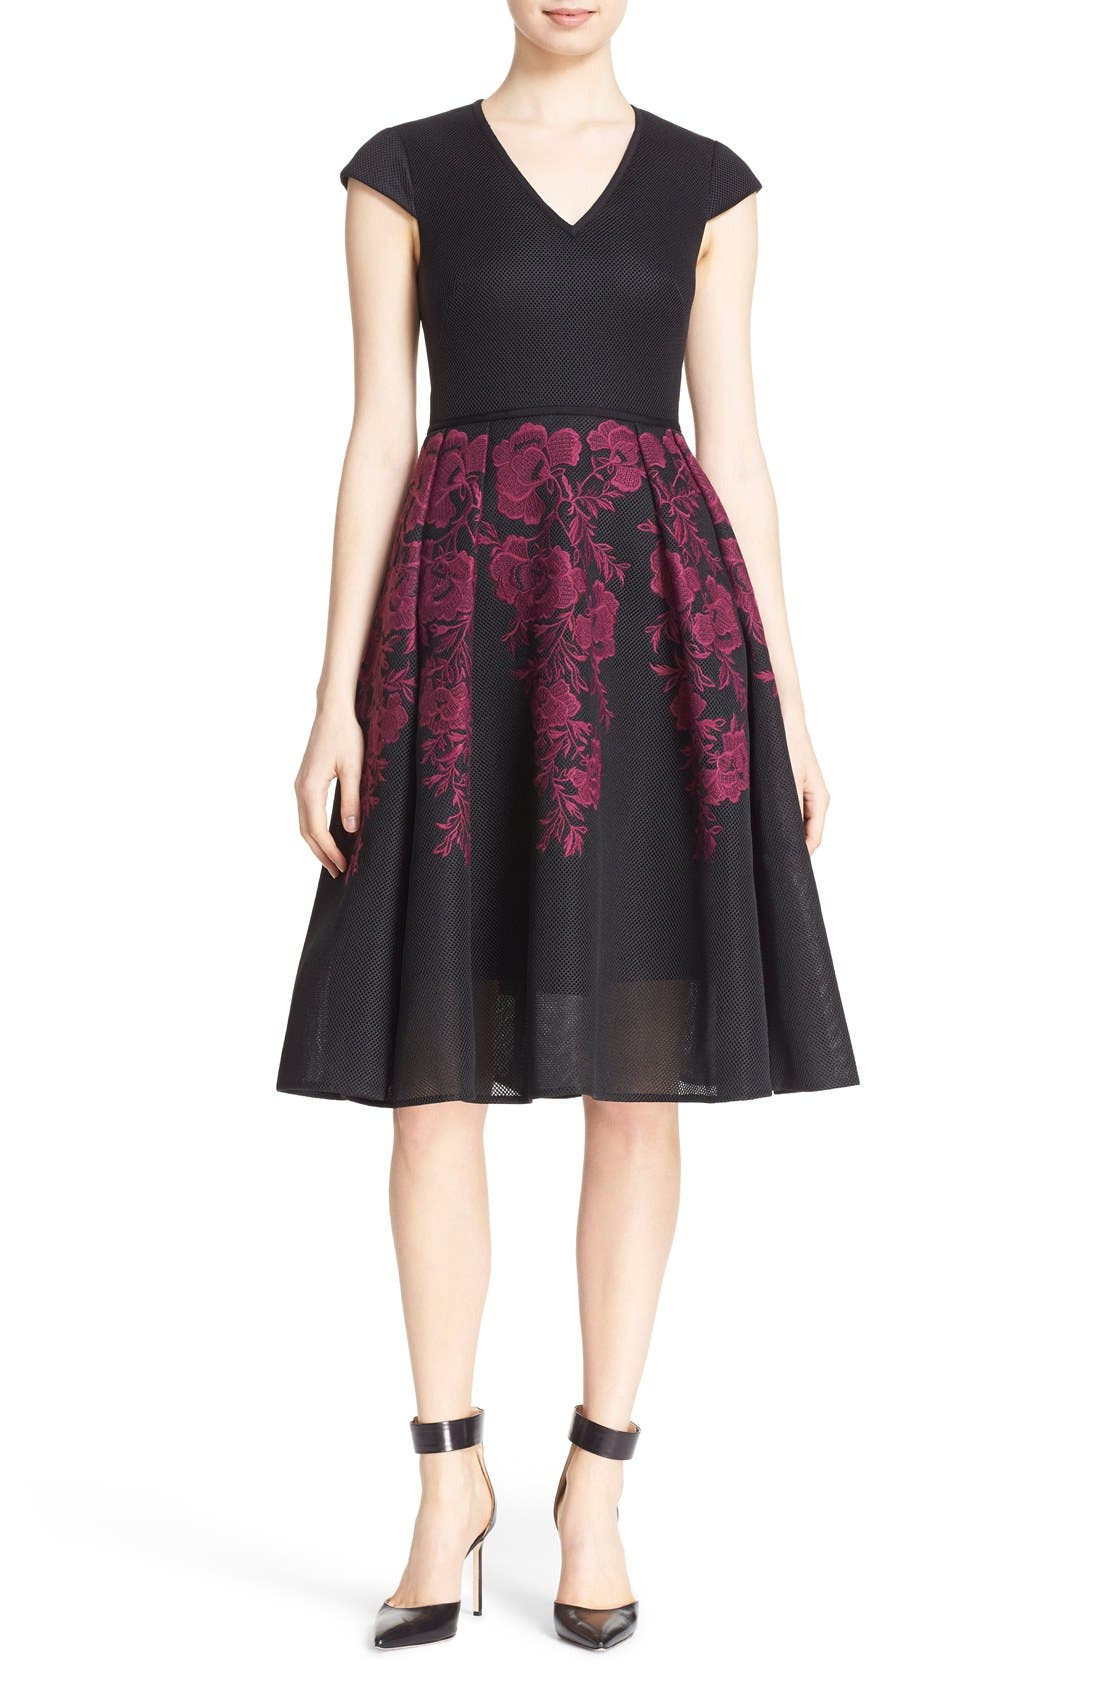 Alternate Image 1 Selected - Ted Baker London 'Levana' Lace Appliqué Mesh Fit & Flare Dress